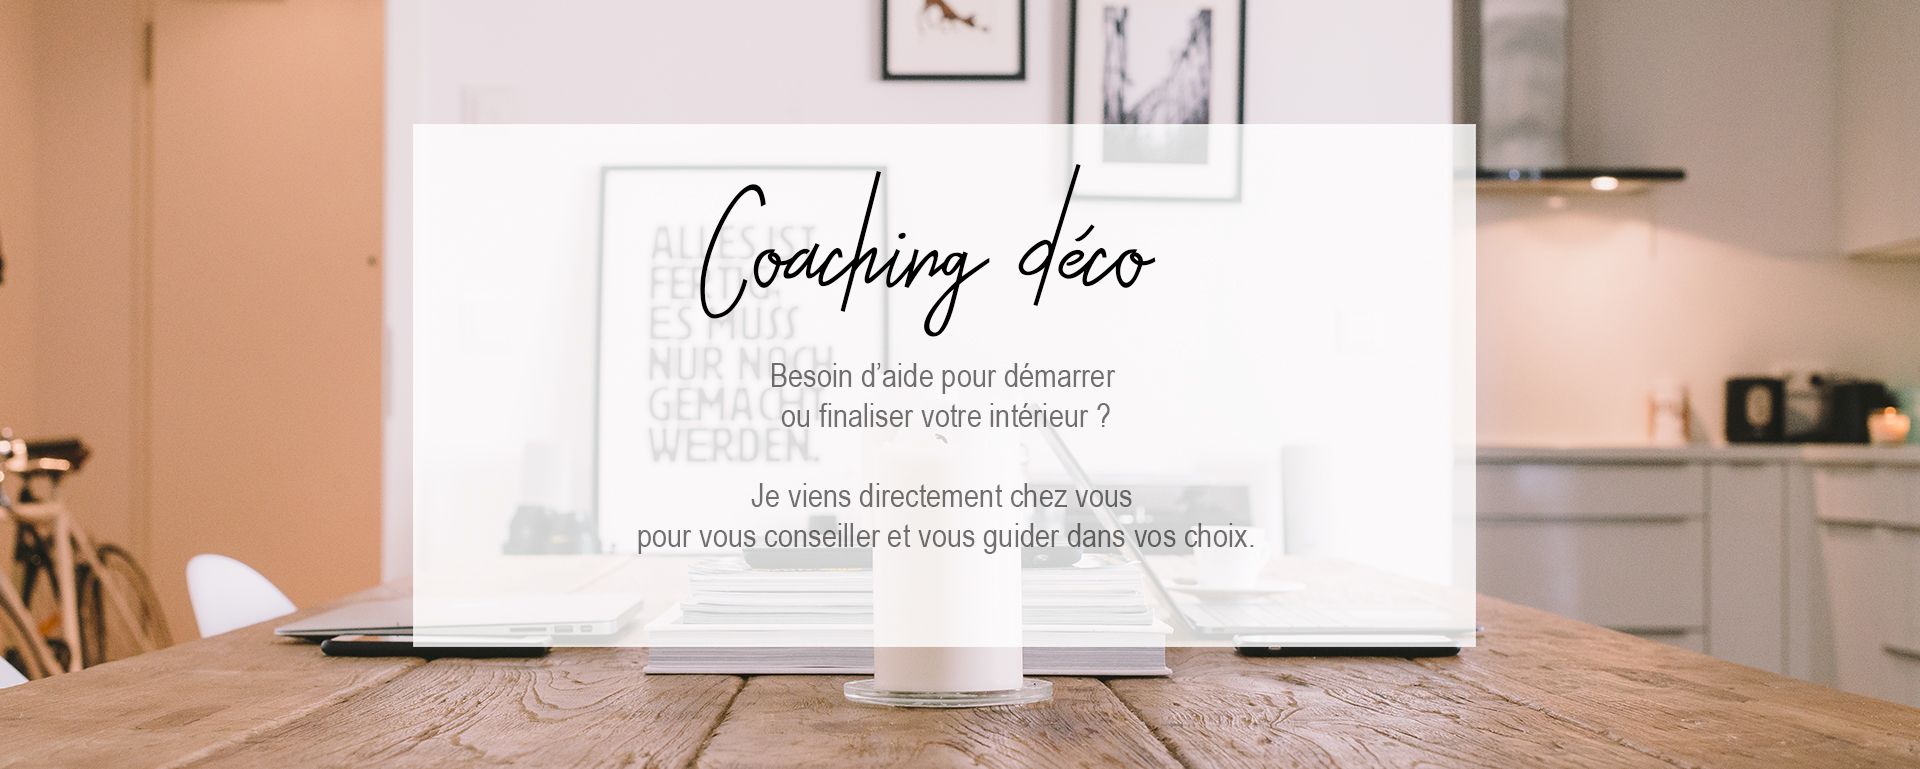 prestations coaching déco